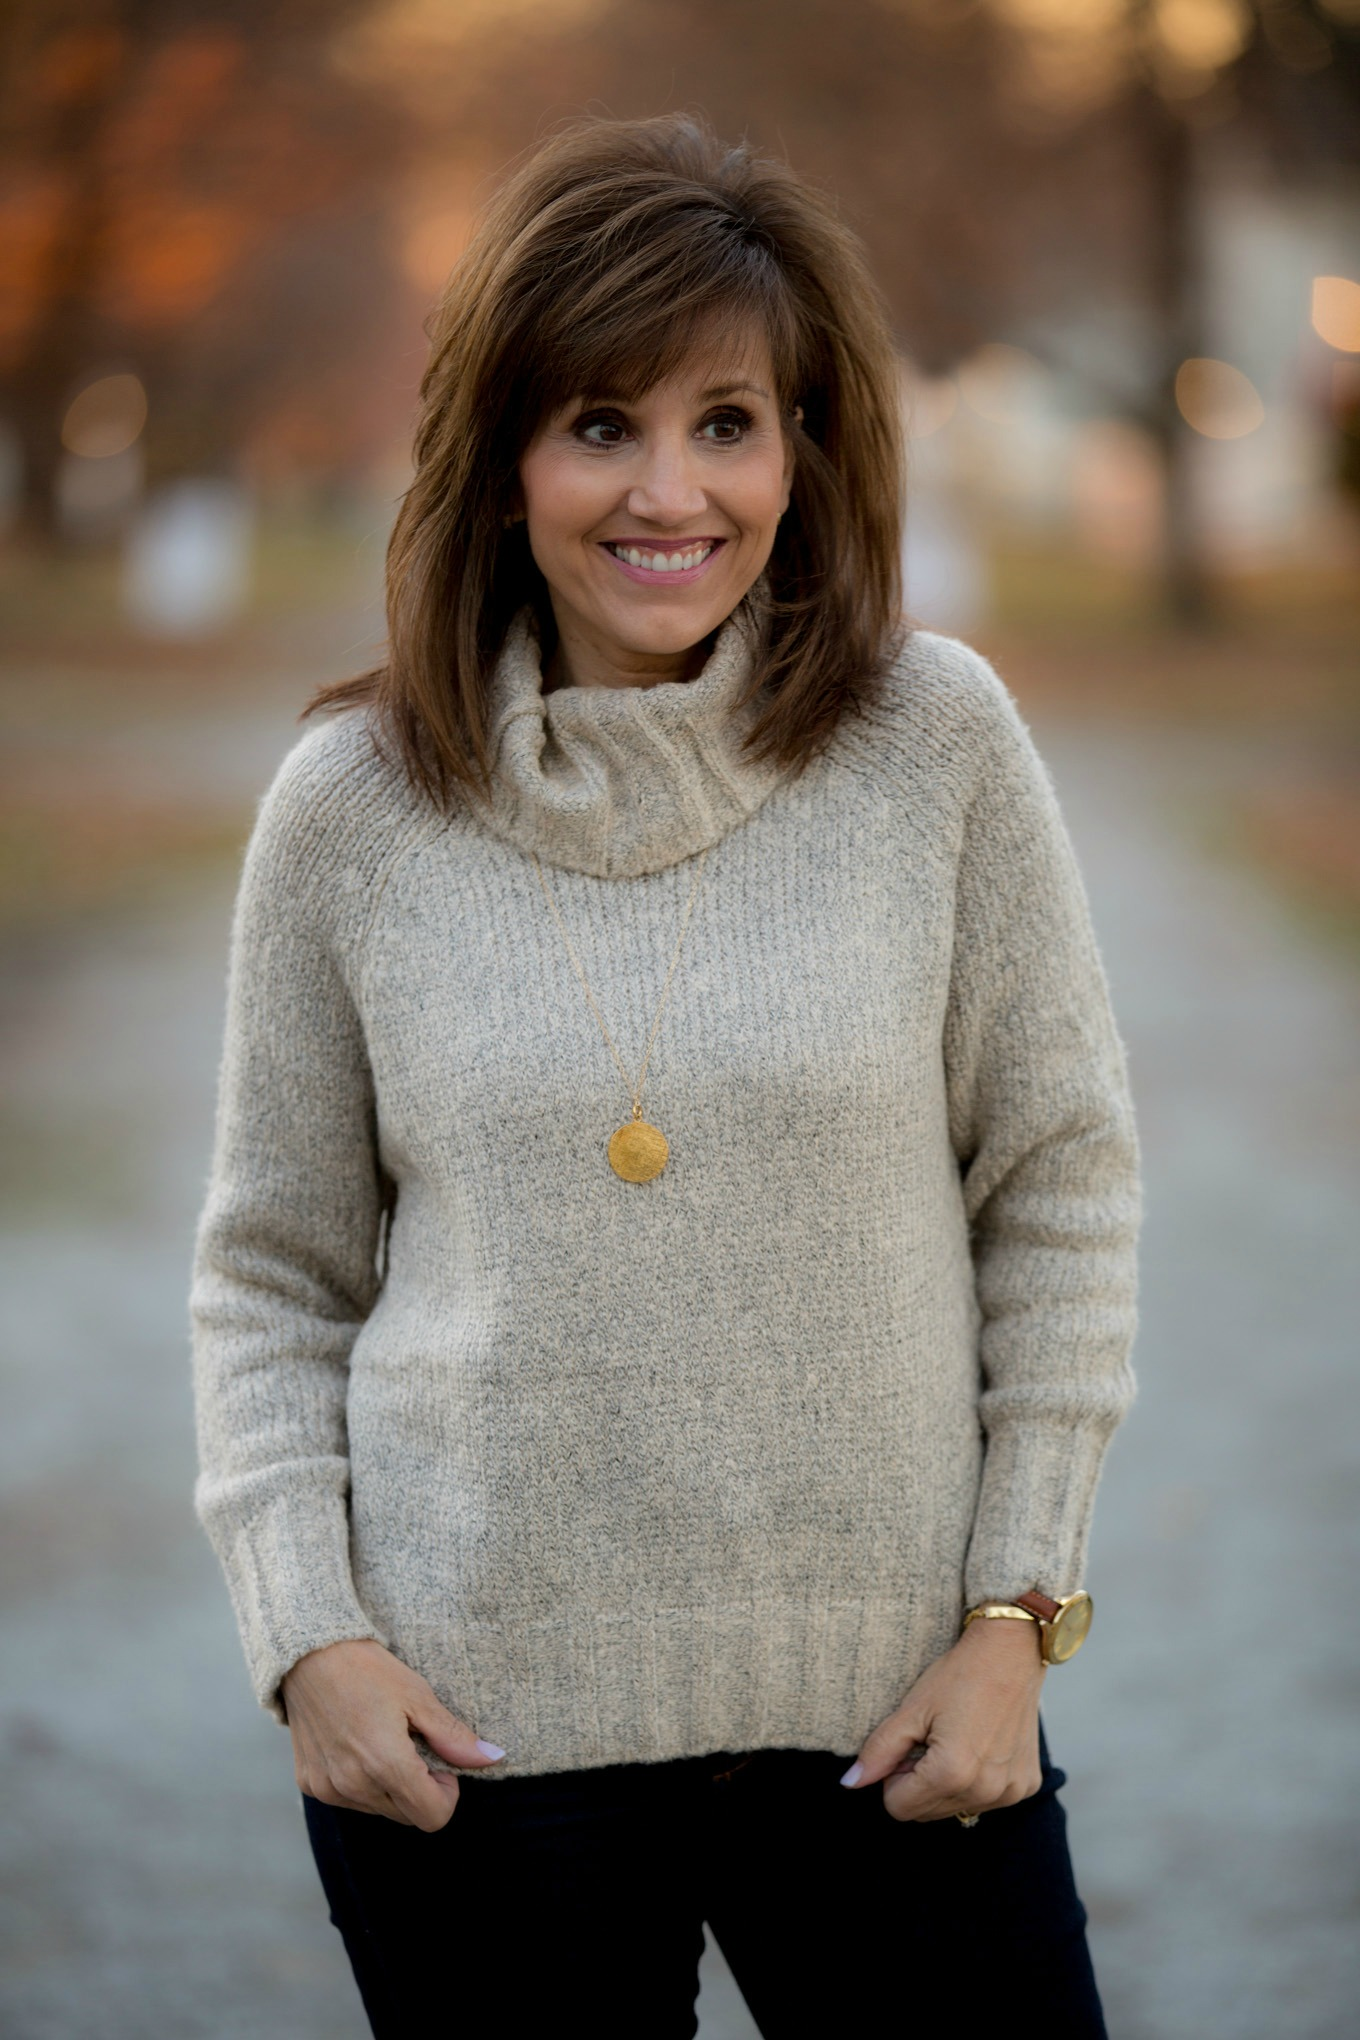 Fashion blogger, Cyndi Spivey, styling a cozy turtleneck sweater for winter fashion.